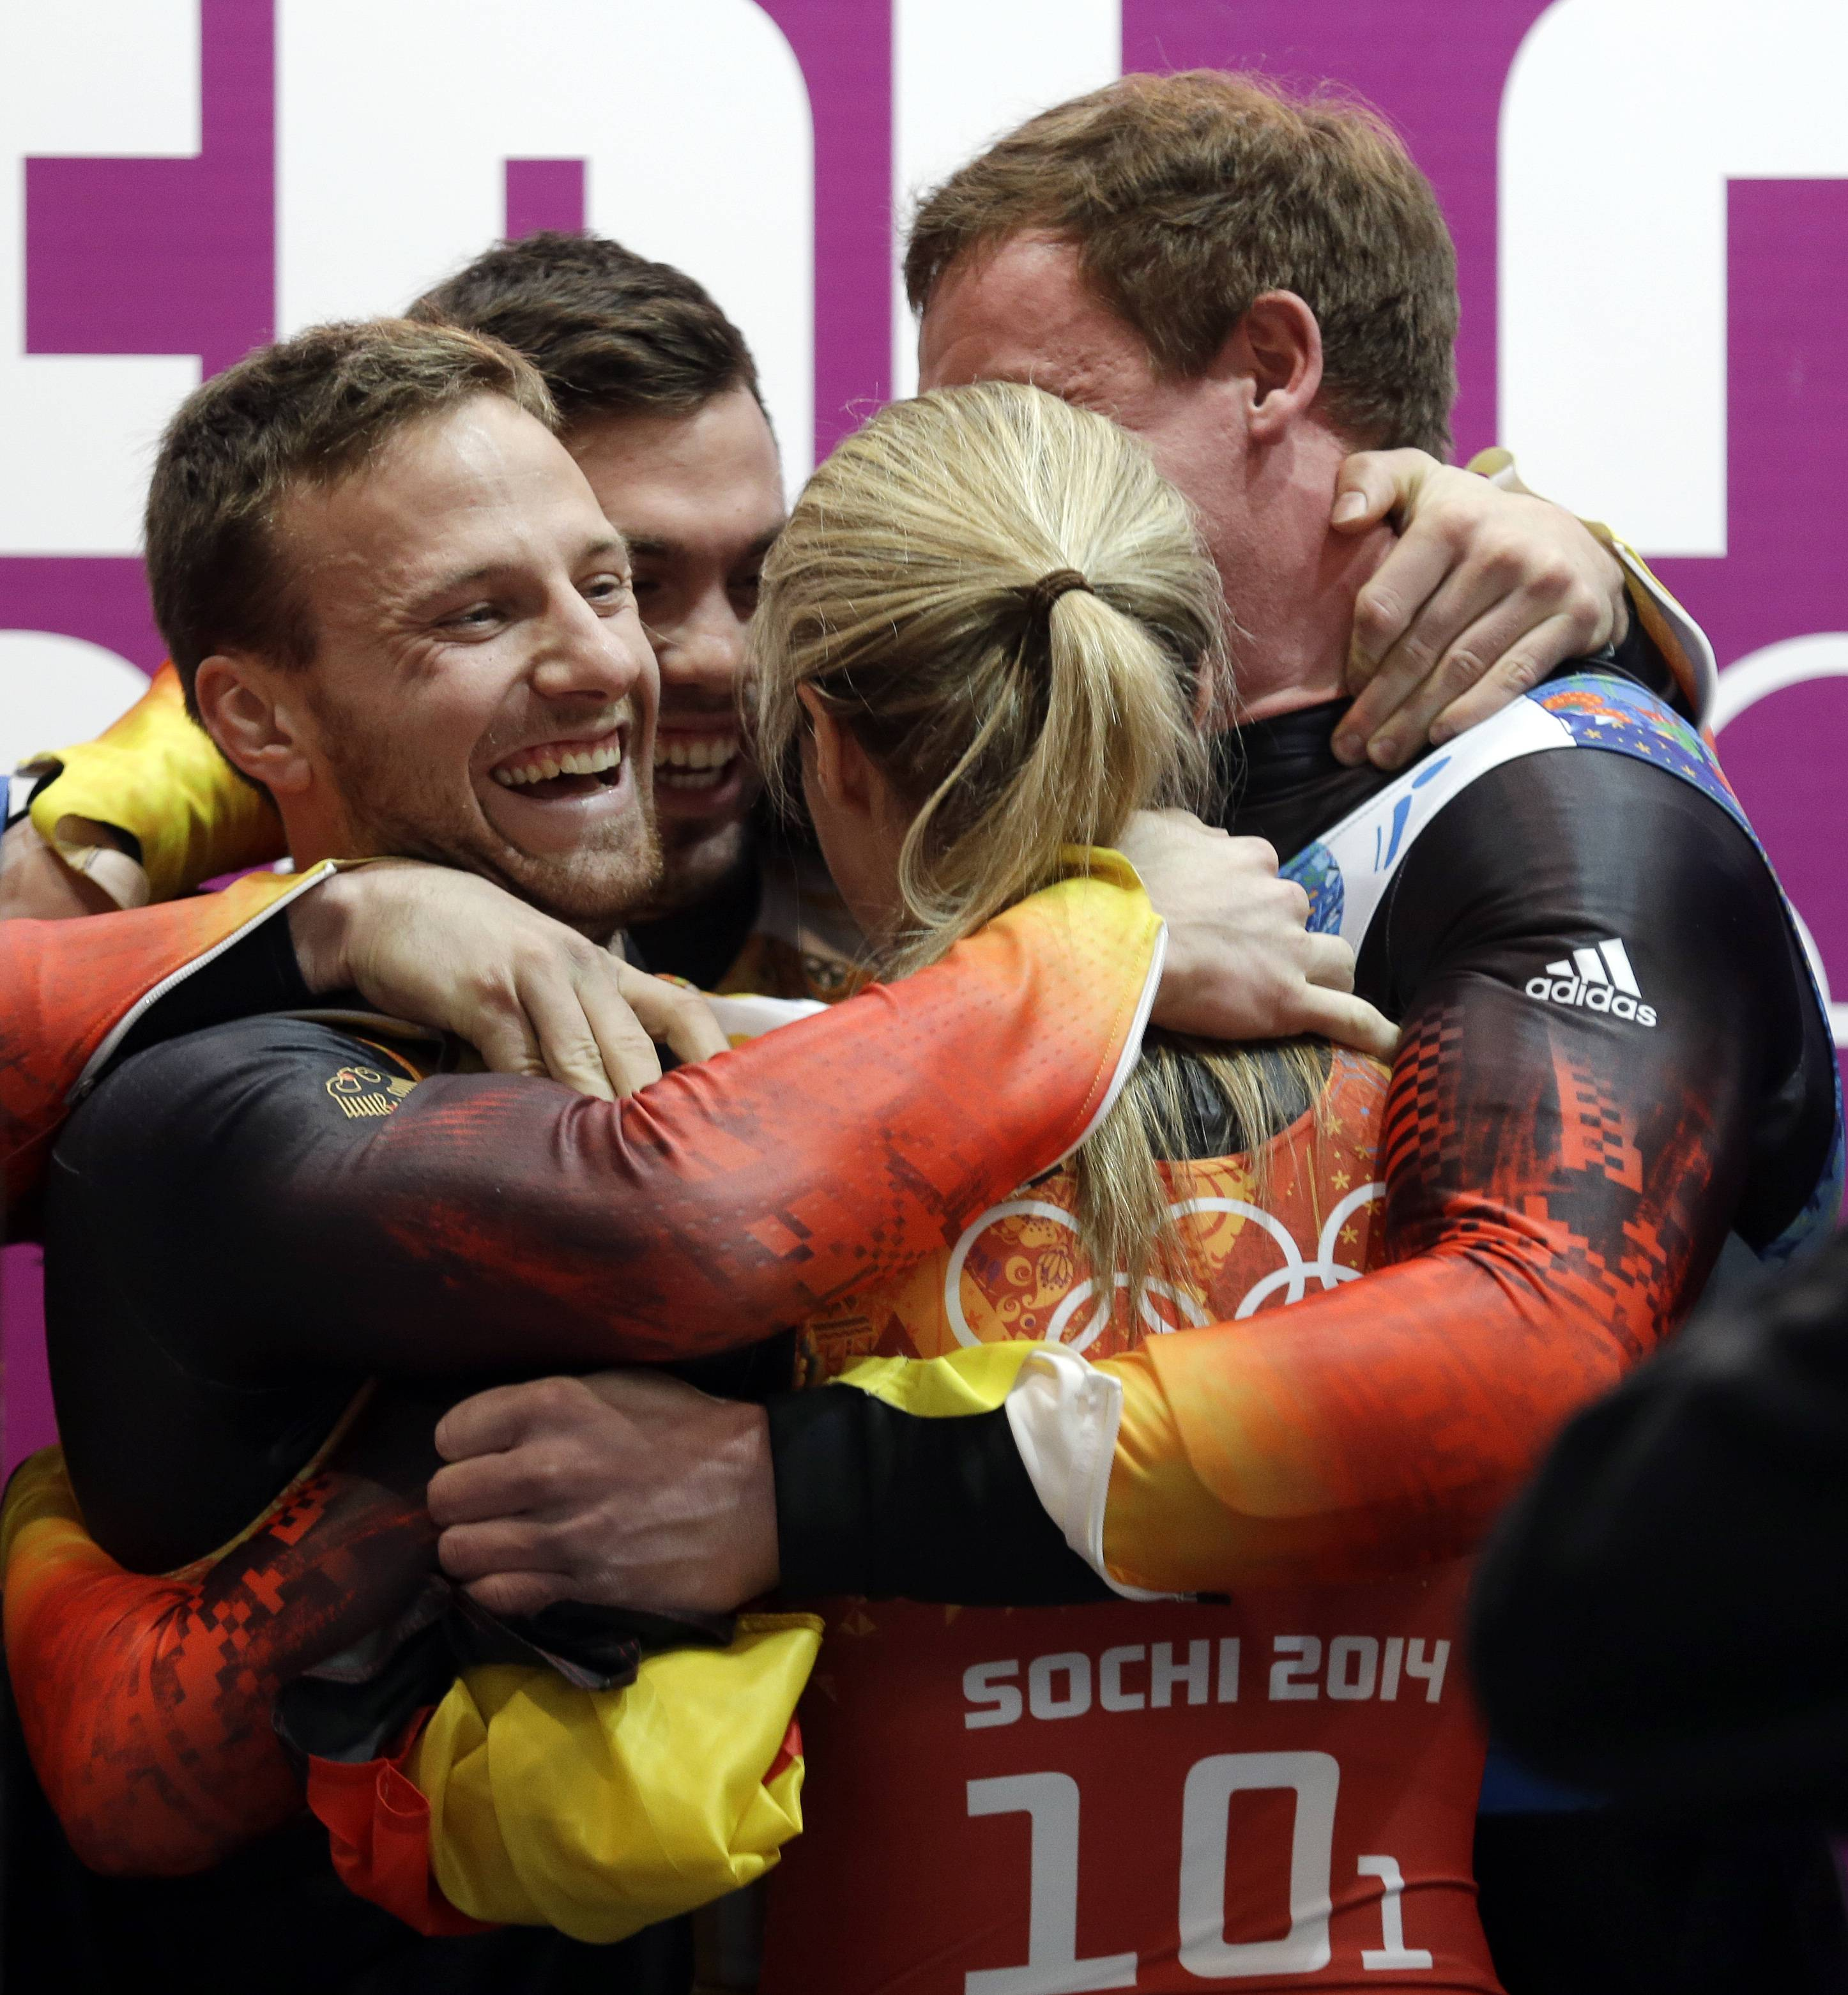 The German team celebrate after they won the gold medal during the luge team relay competition.